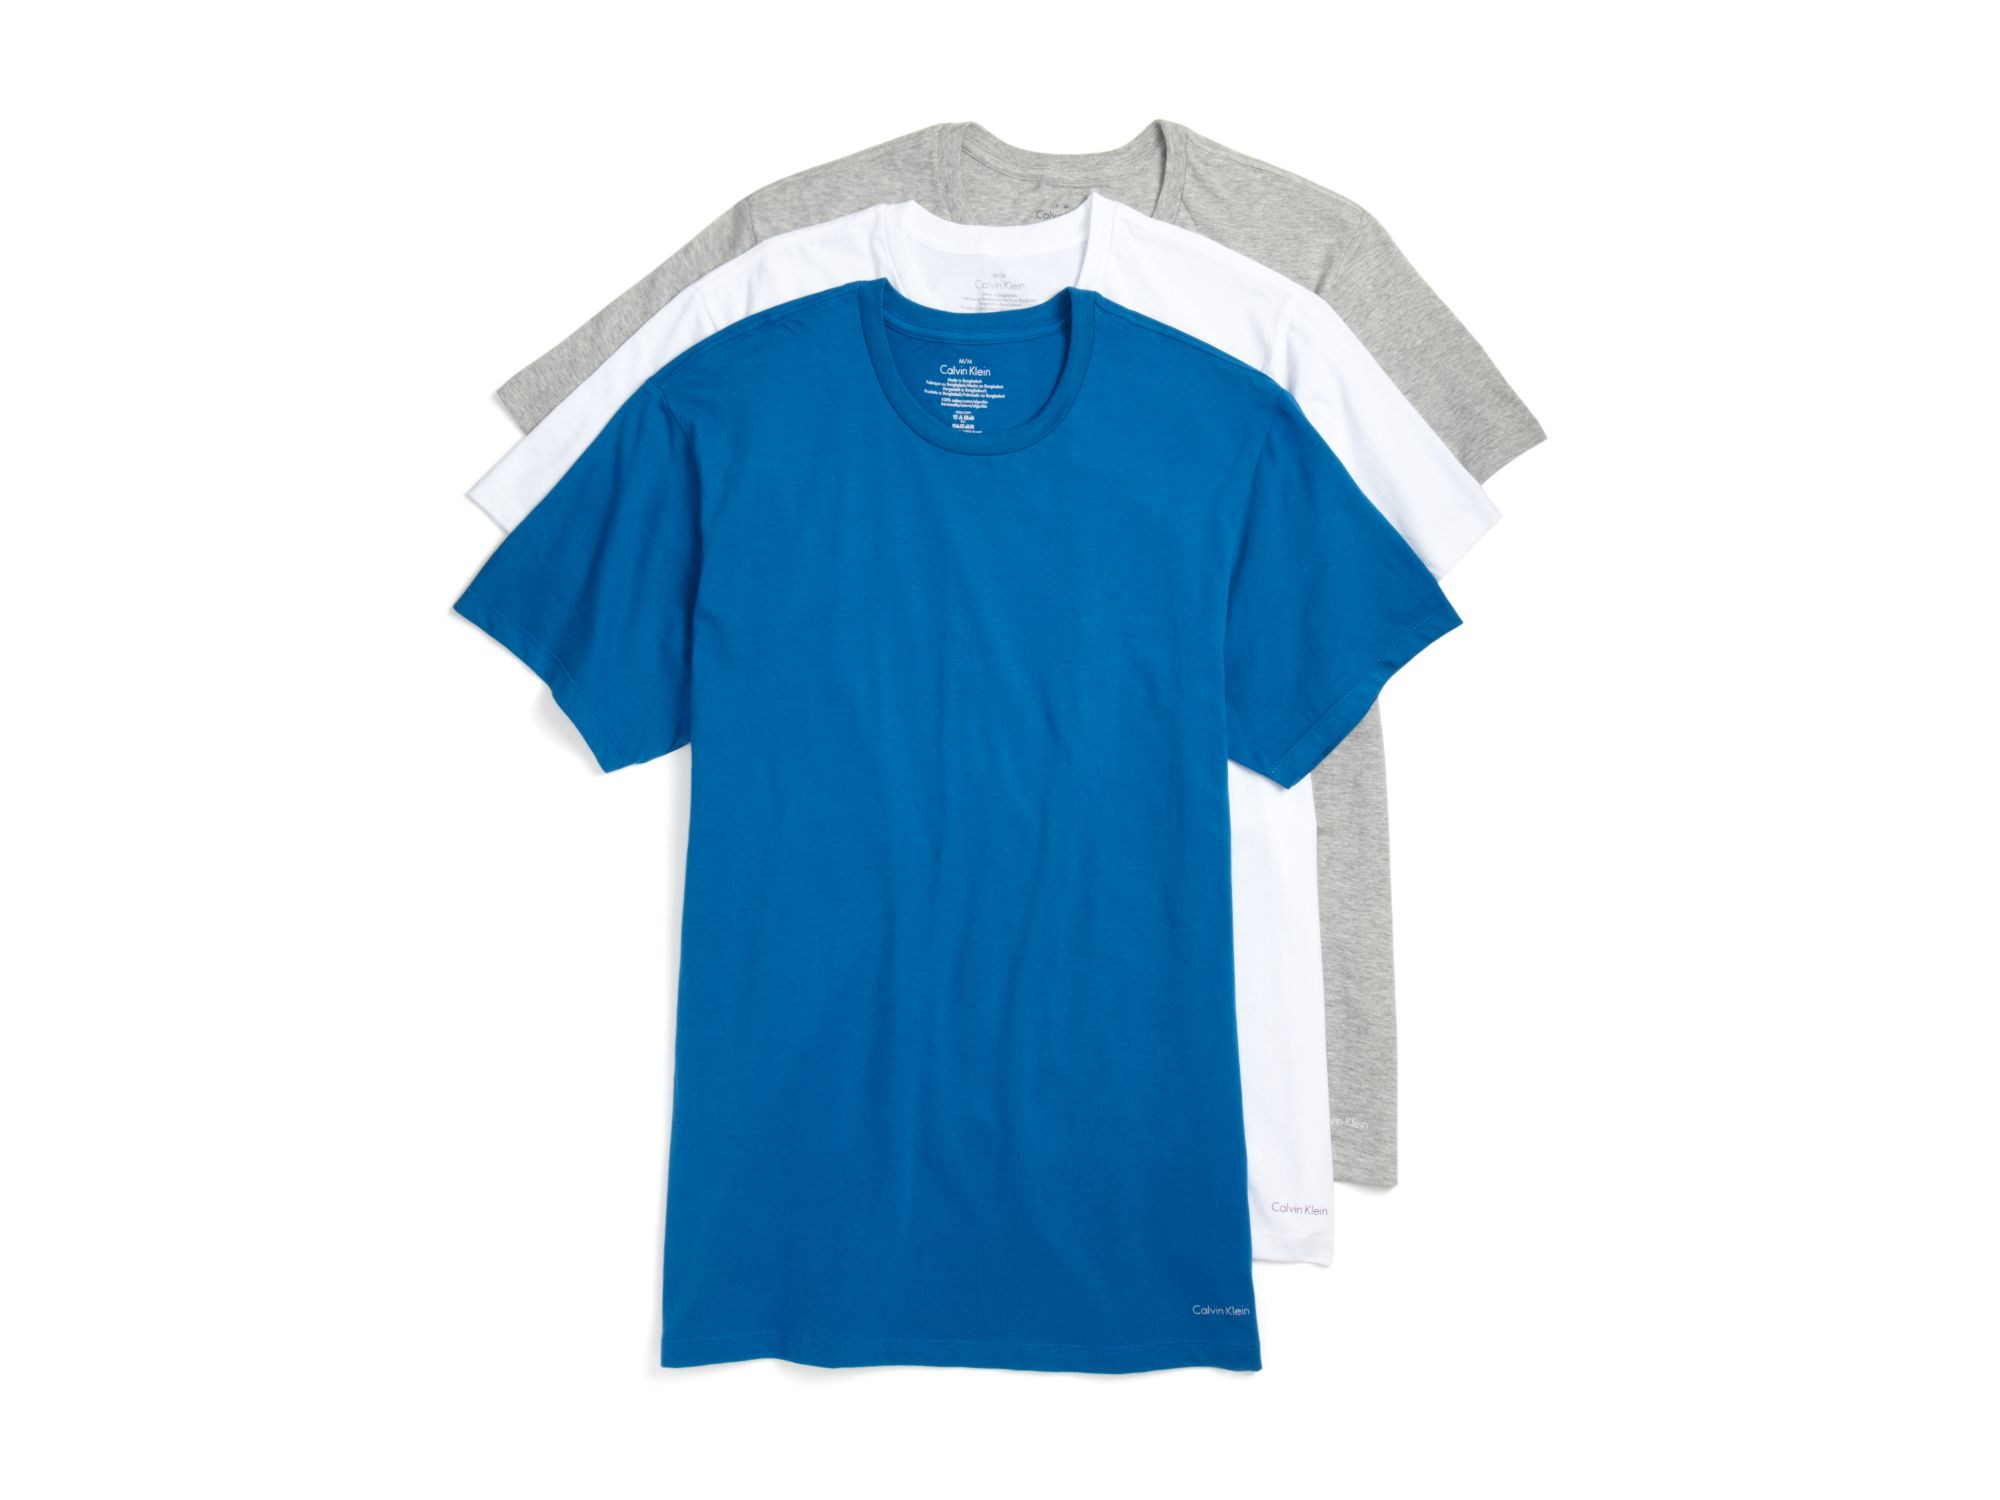 Lyst calvin klein classic crewneck tee pack of 3 for men gallery malvernweather Gallery